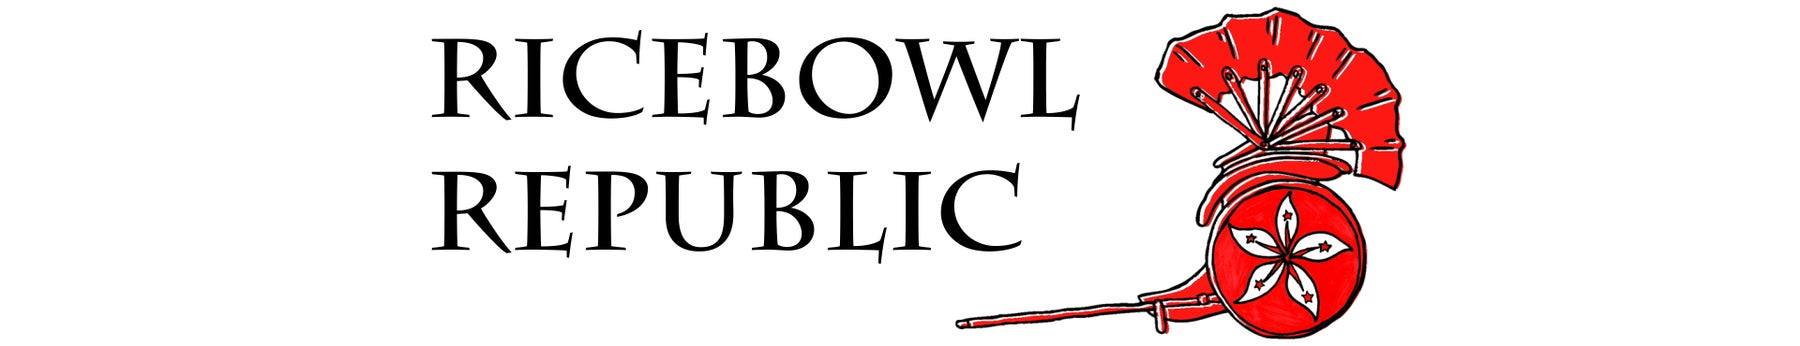 Ricebowl Republic